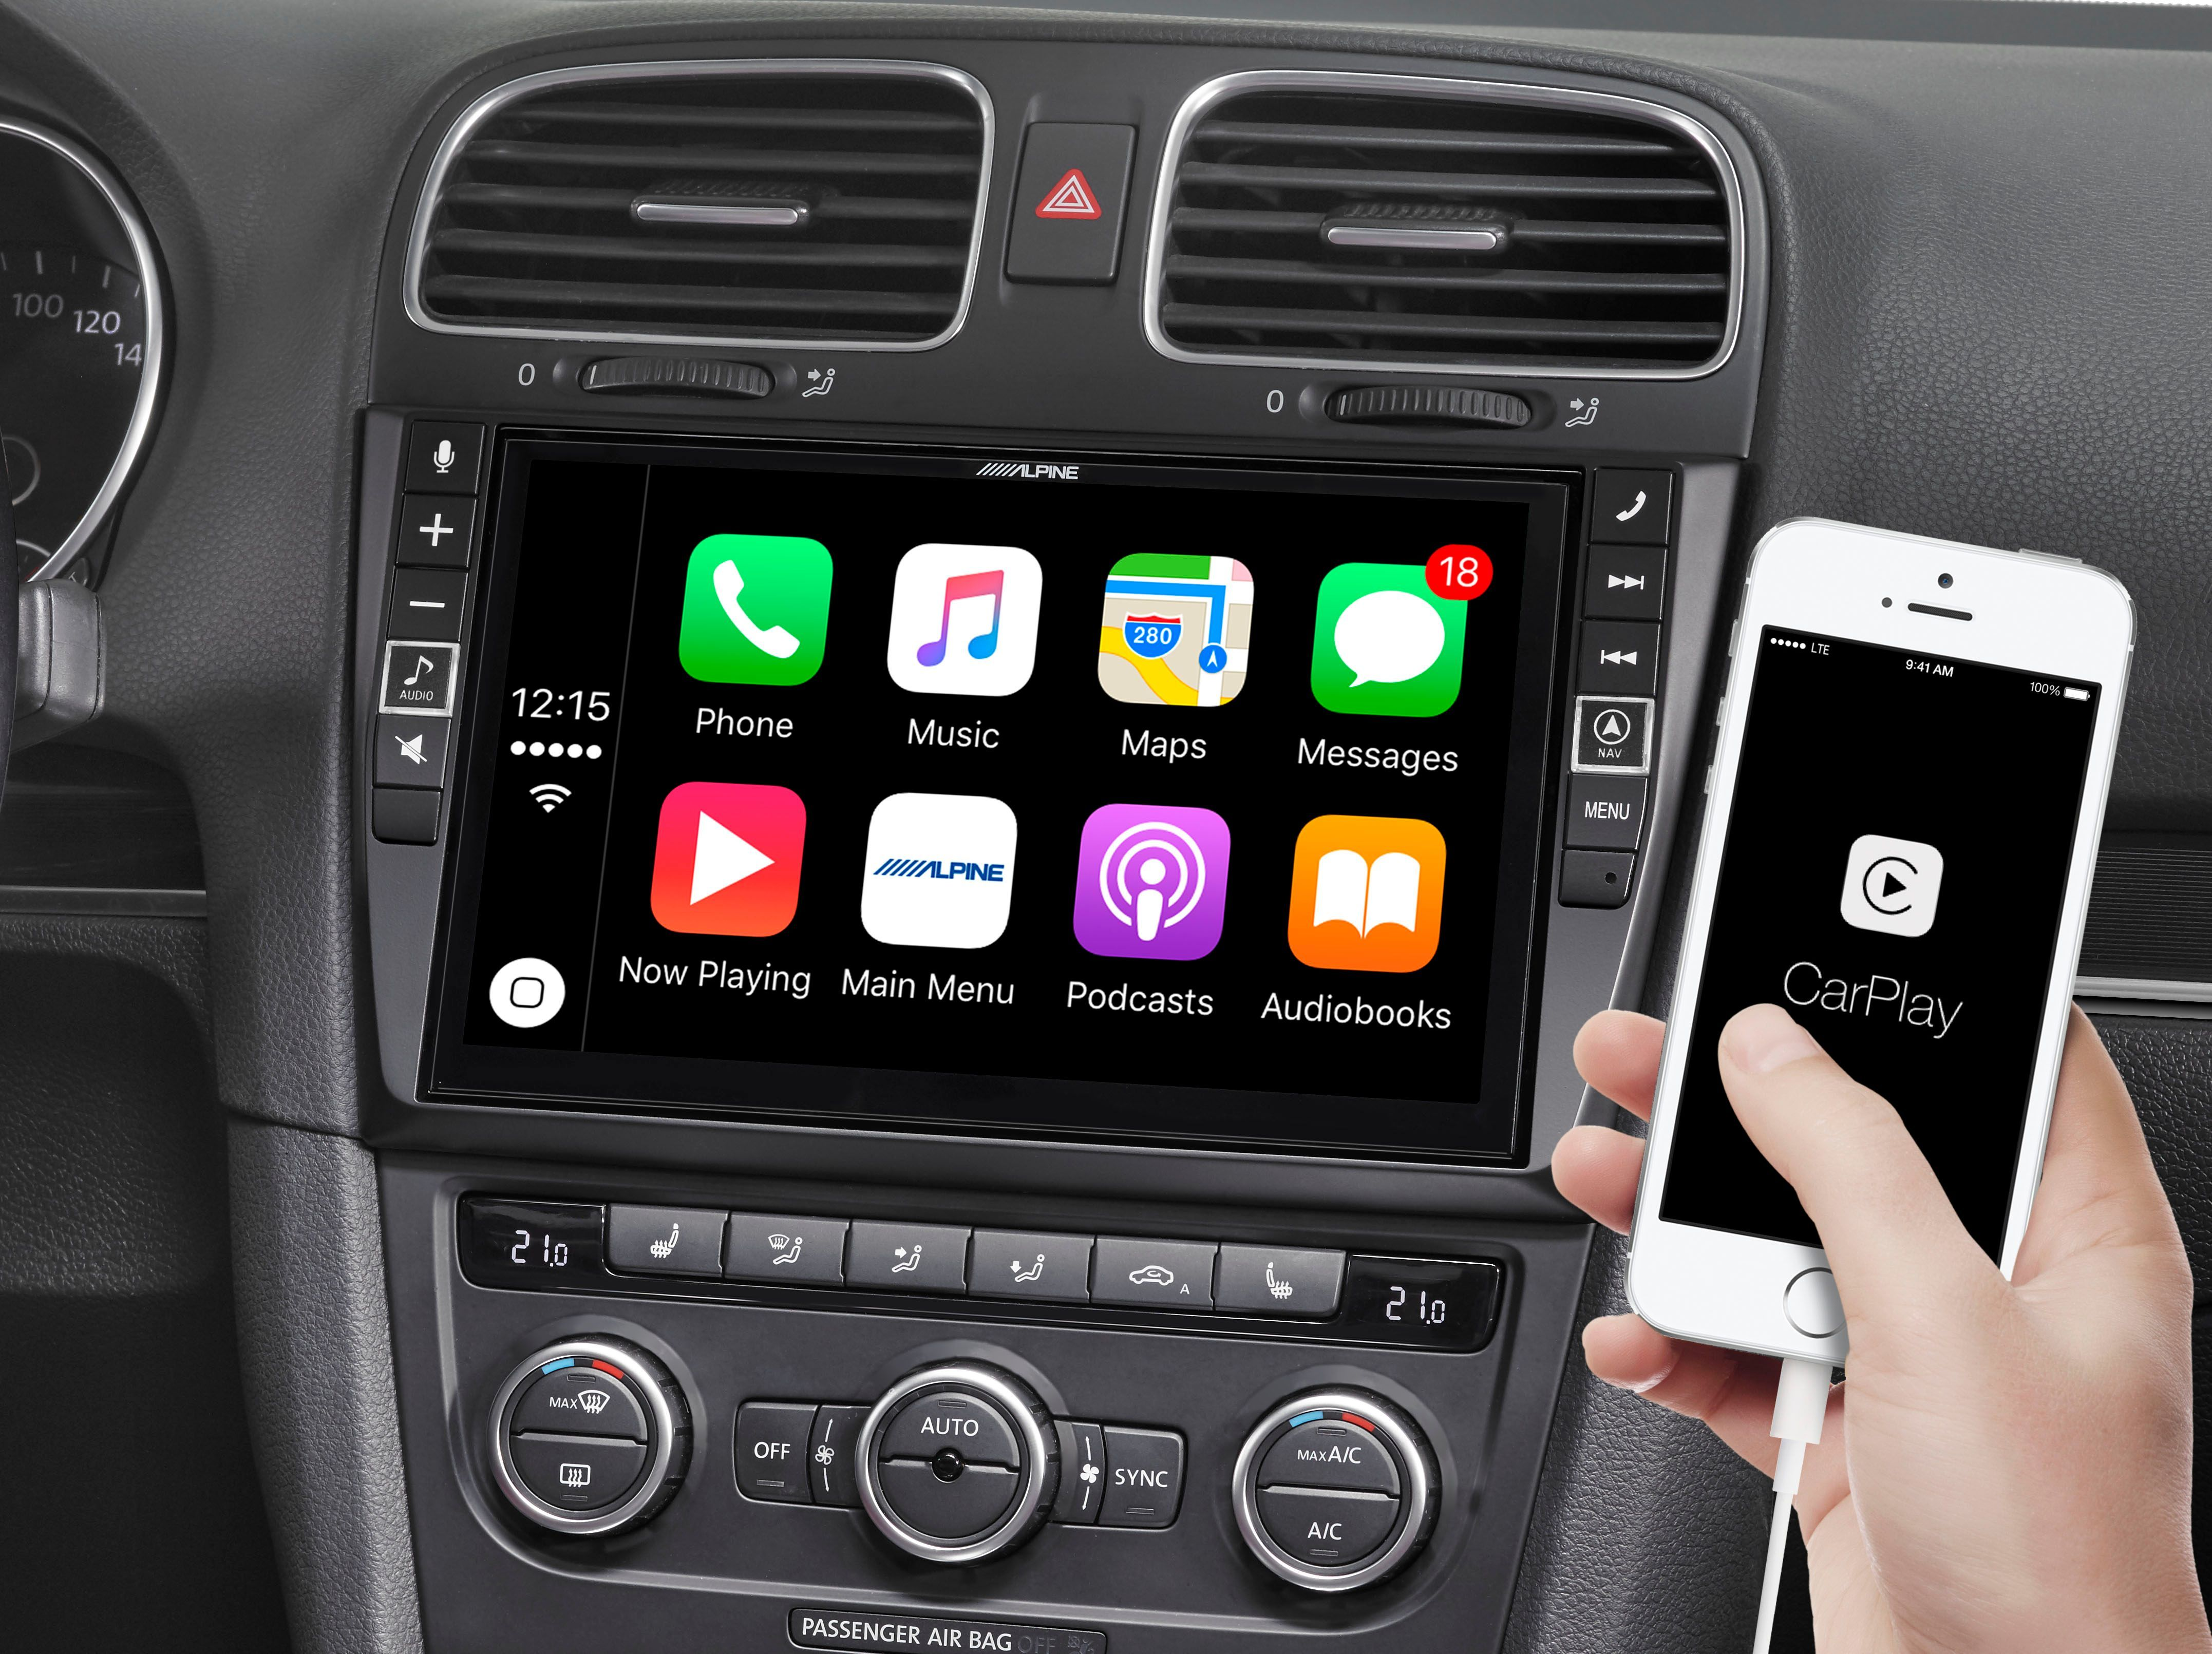 Add a 9inch screen to your VW Golf VI with Apple CarPlay